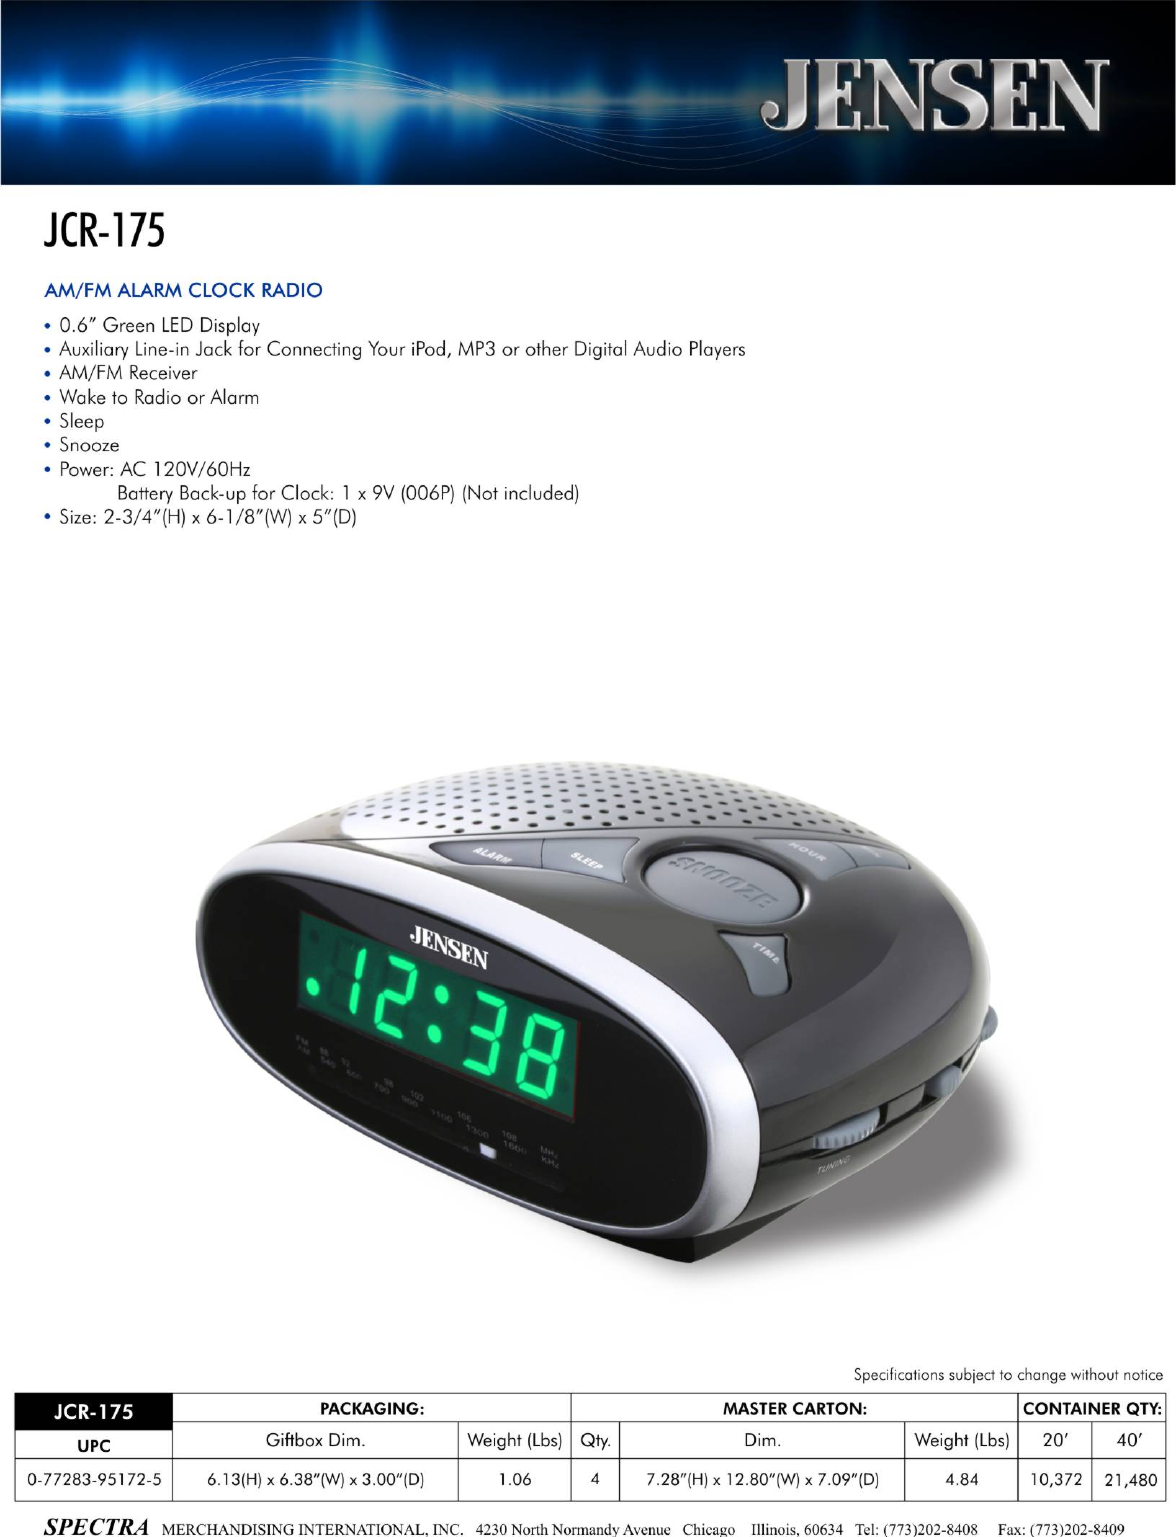 jensen clock radio jcr175 user guide. Black Bedroom Furniture Sets. Home Design Ideas